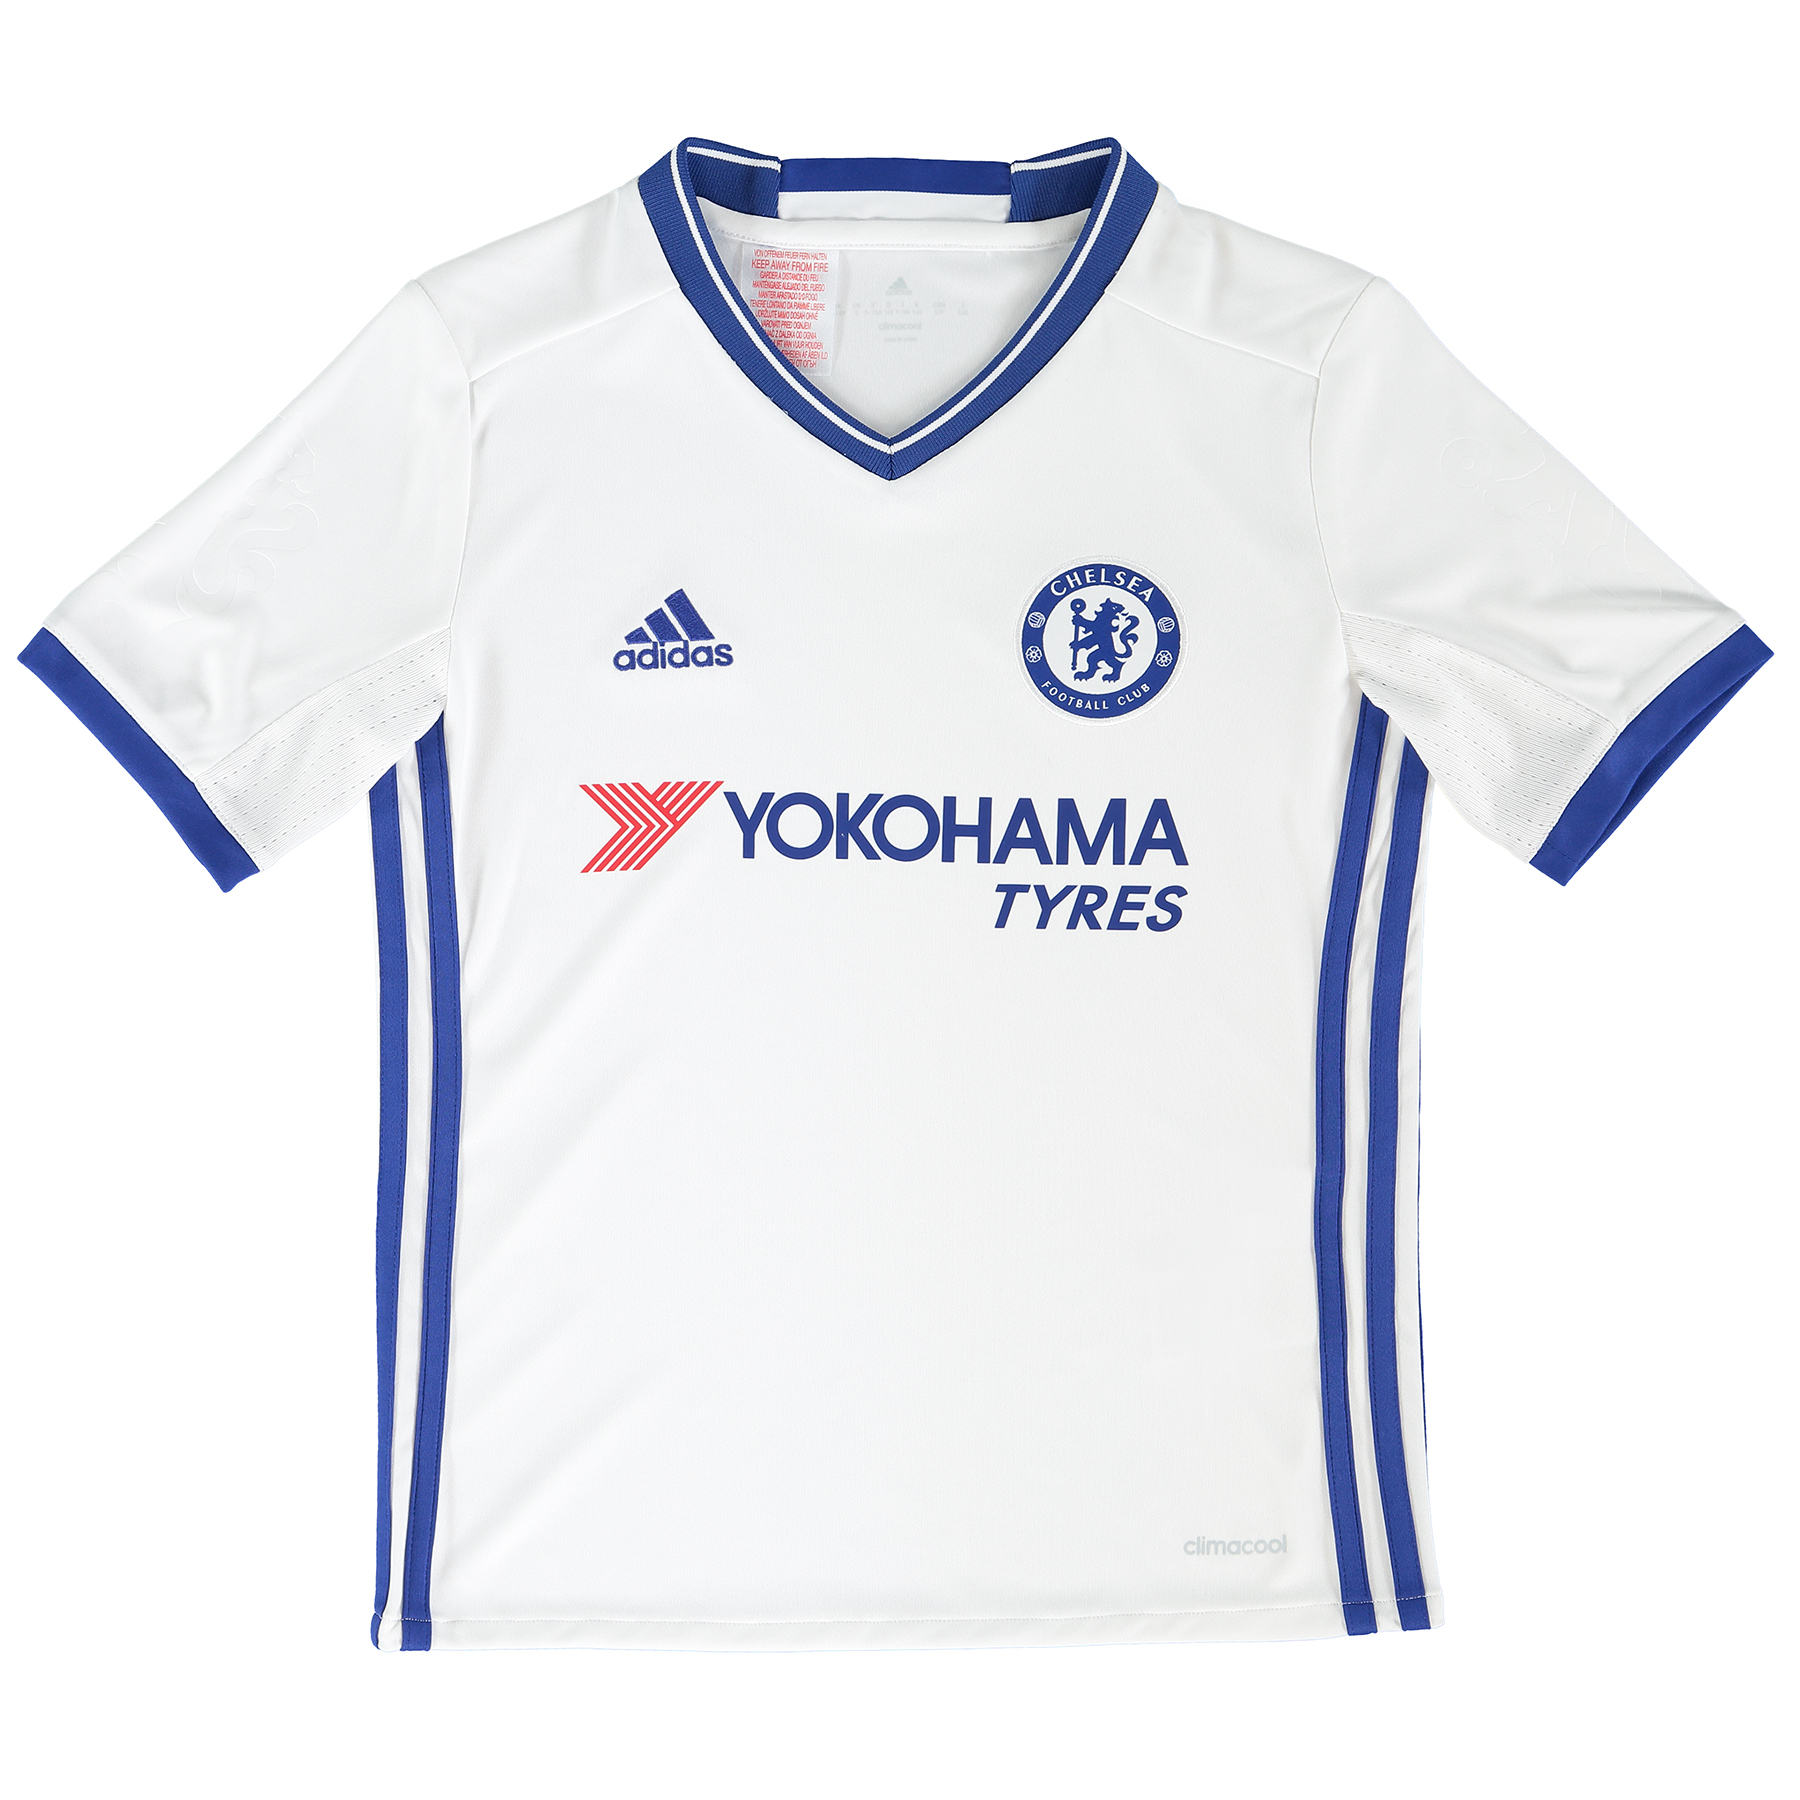 Chelsea Third Shirt 16-17 - Kids   The Chelsea Third Shirt 16-17 - Kids represents a classic colour reversal, with the Lions' usage of white as an alternate shirt option stemming back as far as 1905.   The blue collar and trim is particularly reminiscent of the Chelsea third shirt first introduced in 1958-59, as home-grown forward Jimmy Greaves netted 32 times in 42 starts to become the English top flight's leading goalscorer.    Greaves would surpass the feat two years later, racking up a ratio of more than a goal per game and setting the all-time benchmark for Chelsea strikers to aspire to, as the club's white and blue design endured as an away kit.   Now, these colours return to the Chelsea locker, as Antonio Conte's team attempt to reclaim their Premier League crown in matches across the country.   Details:   Regular fit Ribbed V-neck Embossed fabric  climalite® technology Mesh inserts in sleeves 'CHELSEA FC' wording on back collar Chelsea FC woven club crest on left chest Embossed Chelsea lion emblem on sleeve adidas brandmark on right chest adidas 3 Stripe branding on sides Part of sustainable product program 100% recycled polyester interlock